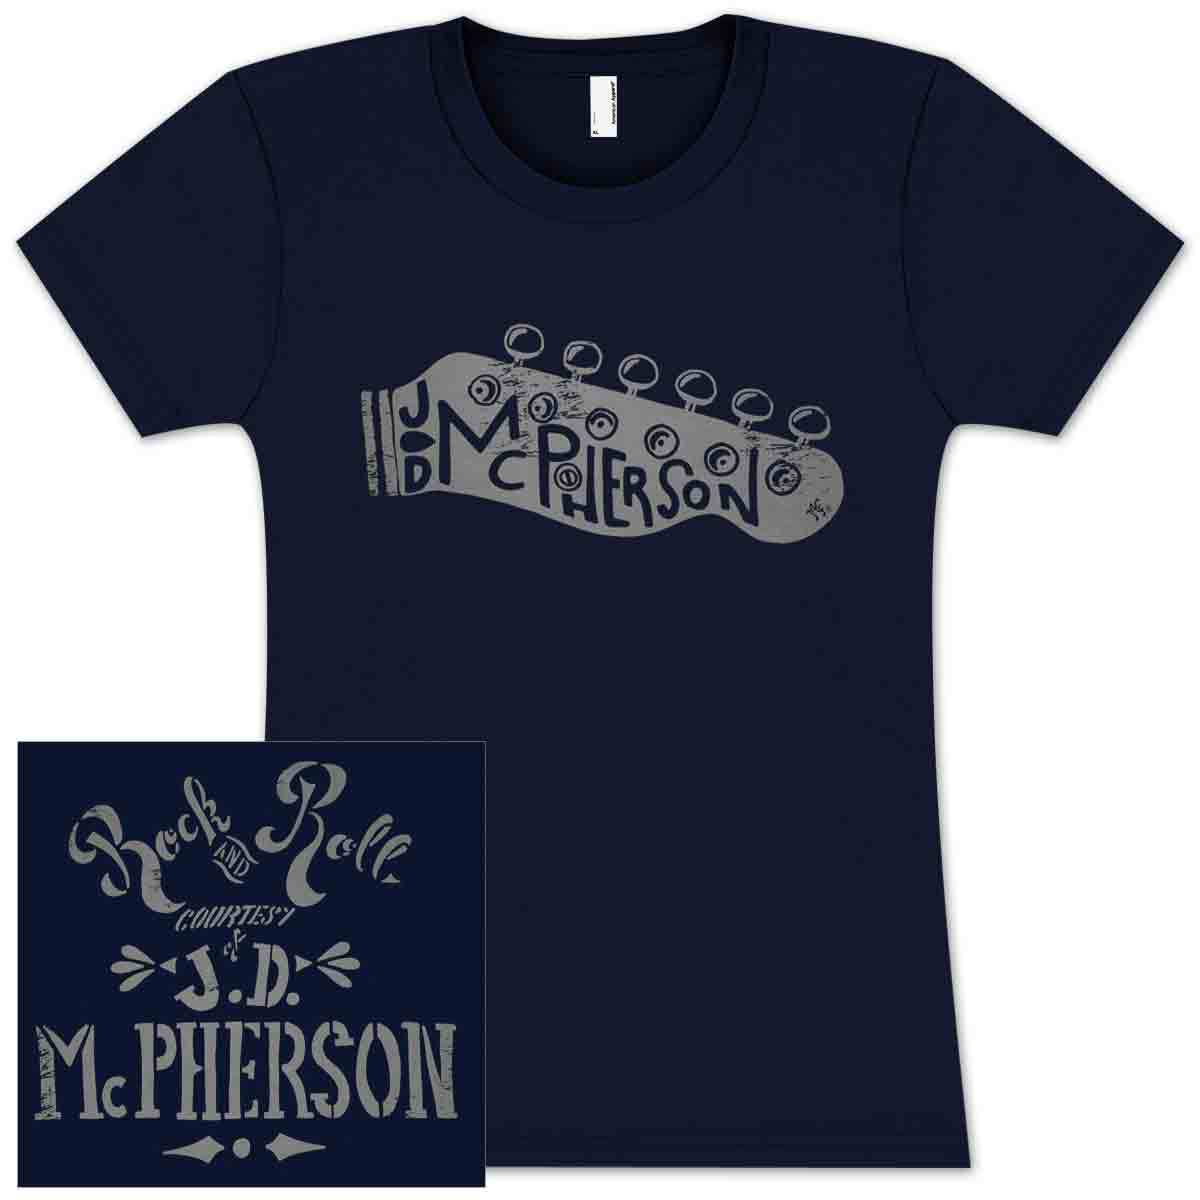 Jd Mcpherson Rock And Roll Ladies T Shirt Shop The